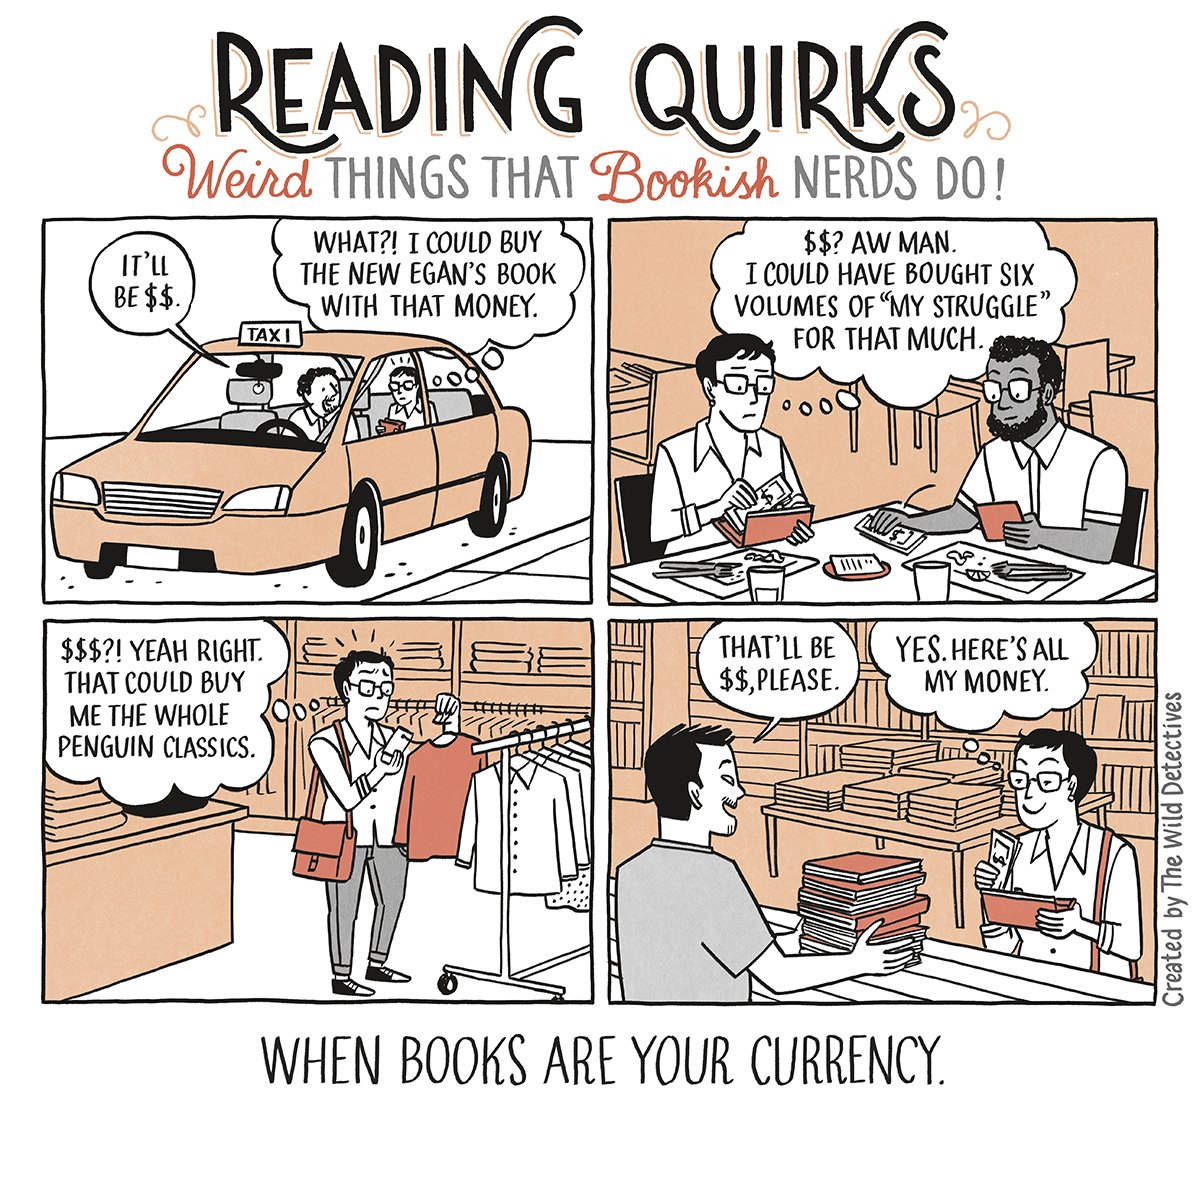 Reading Quirks #57